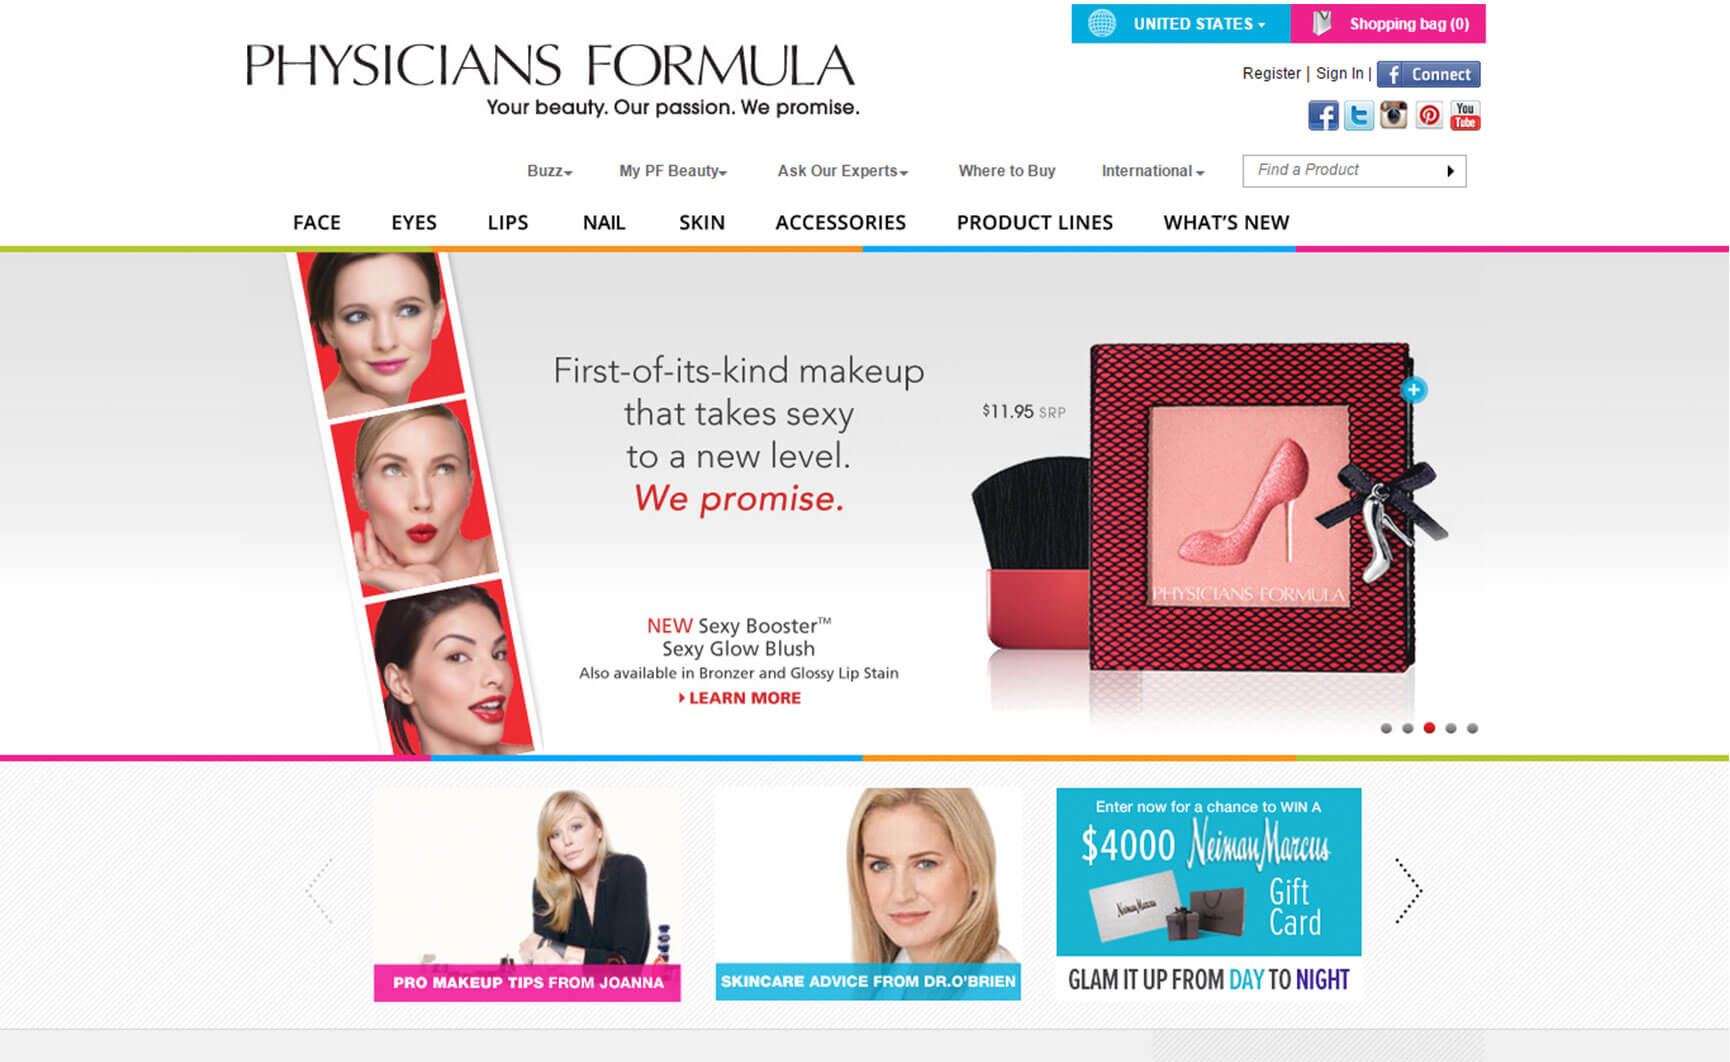 Physicians Formula Before Website Redesign Image